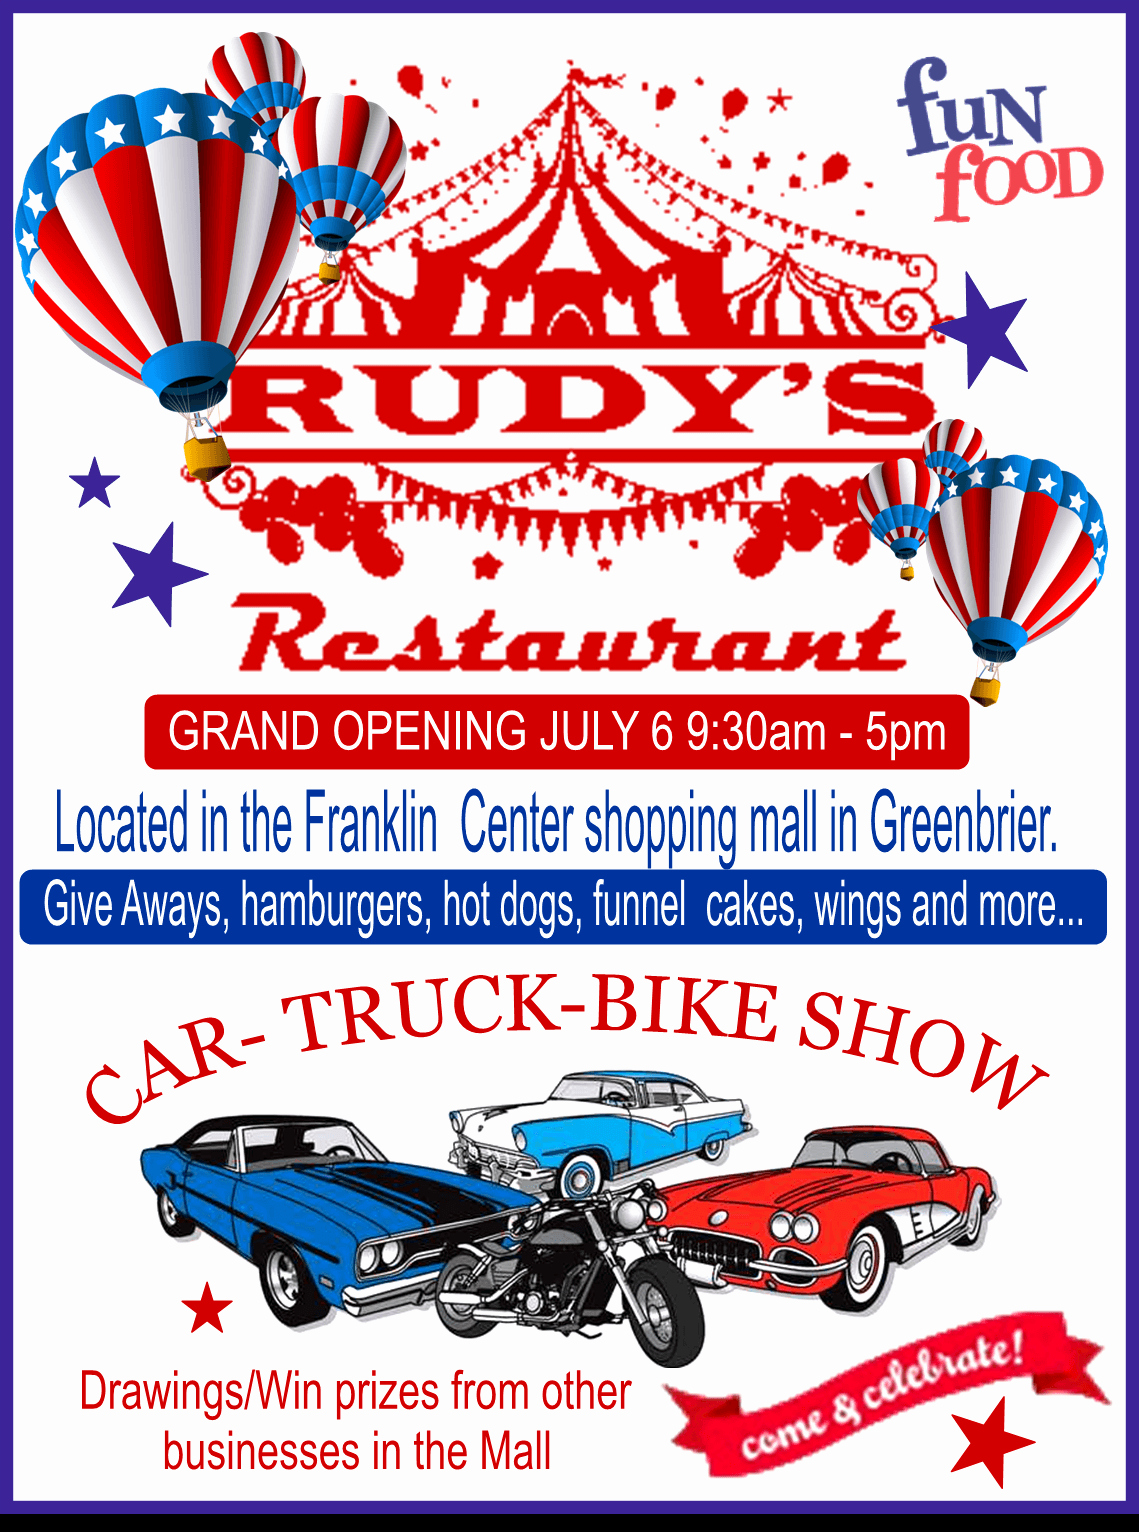 Restaurant Grand Opening Flyer Beautiful Rudy's Restaurant In Greenbrier – Grand Opening & Car Show July 6